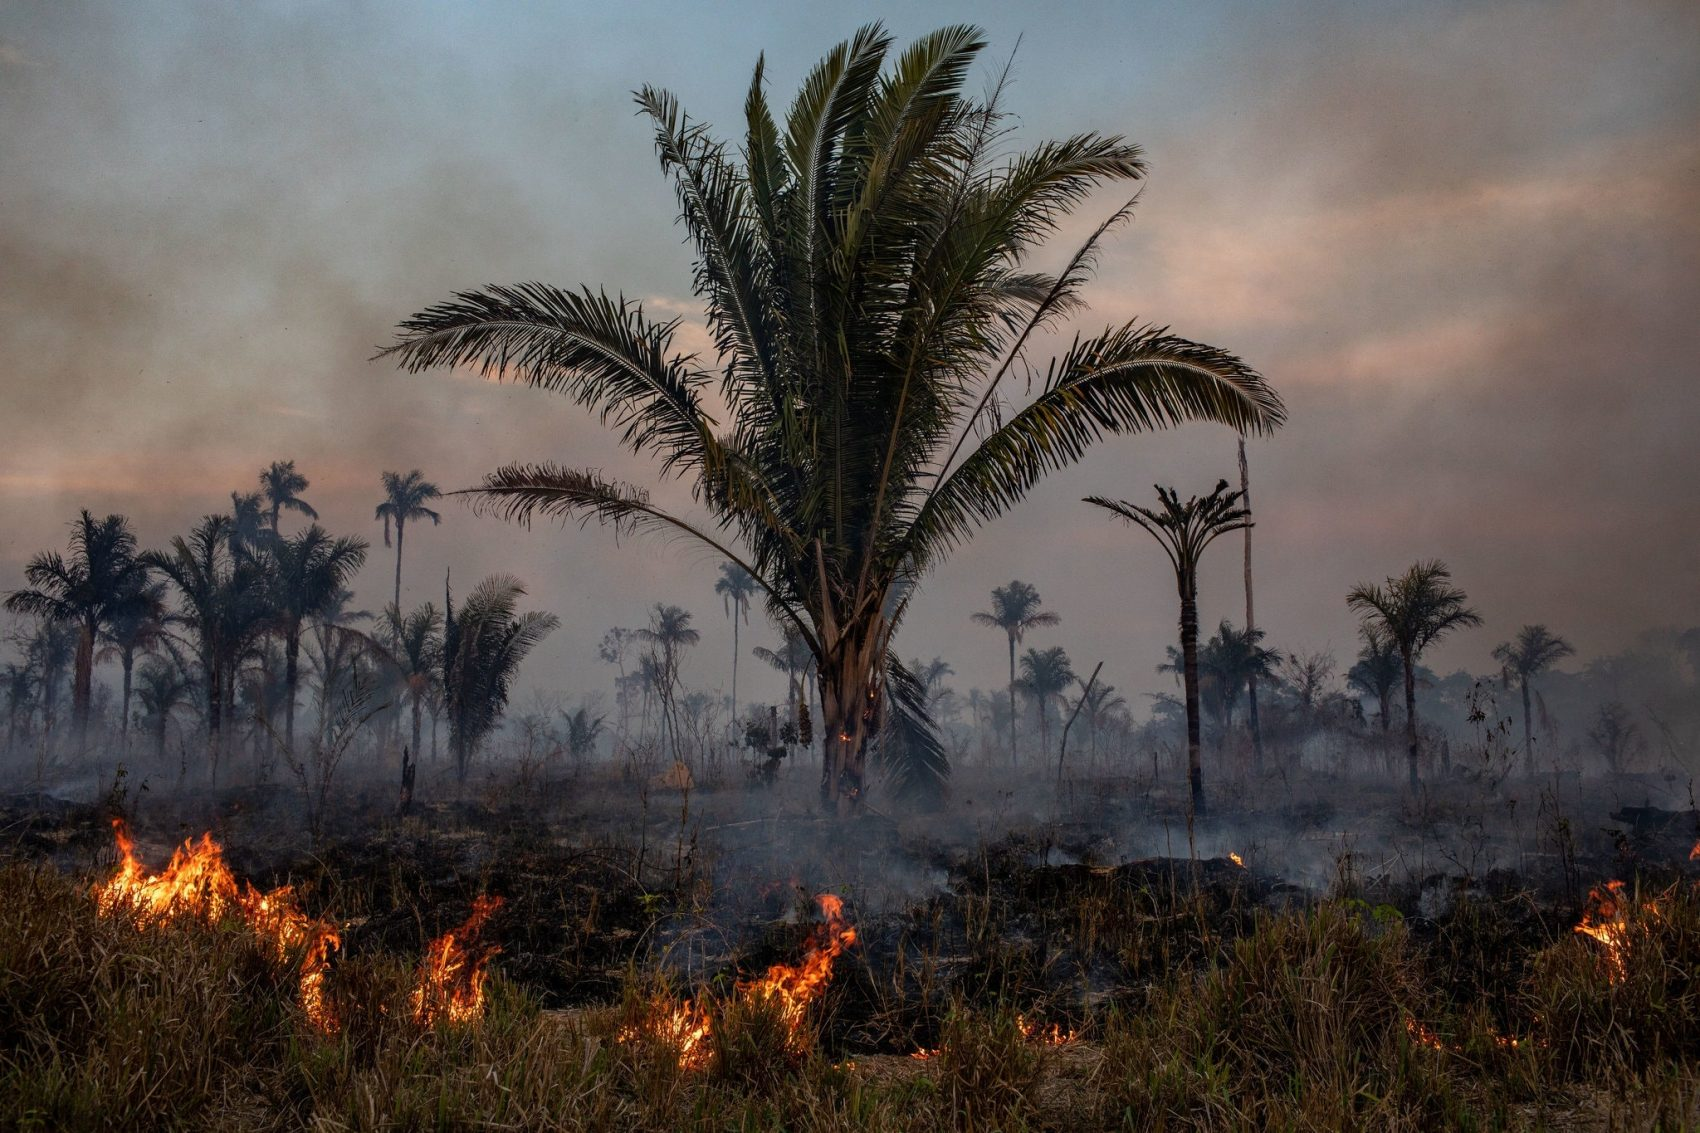 Outbreaks, Fires, Amazon, Lugs of the World